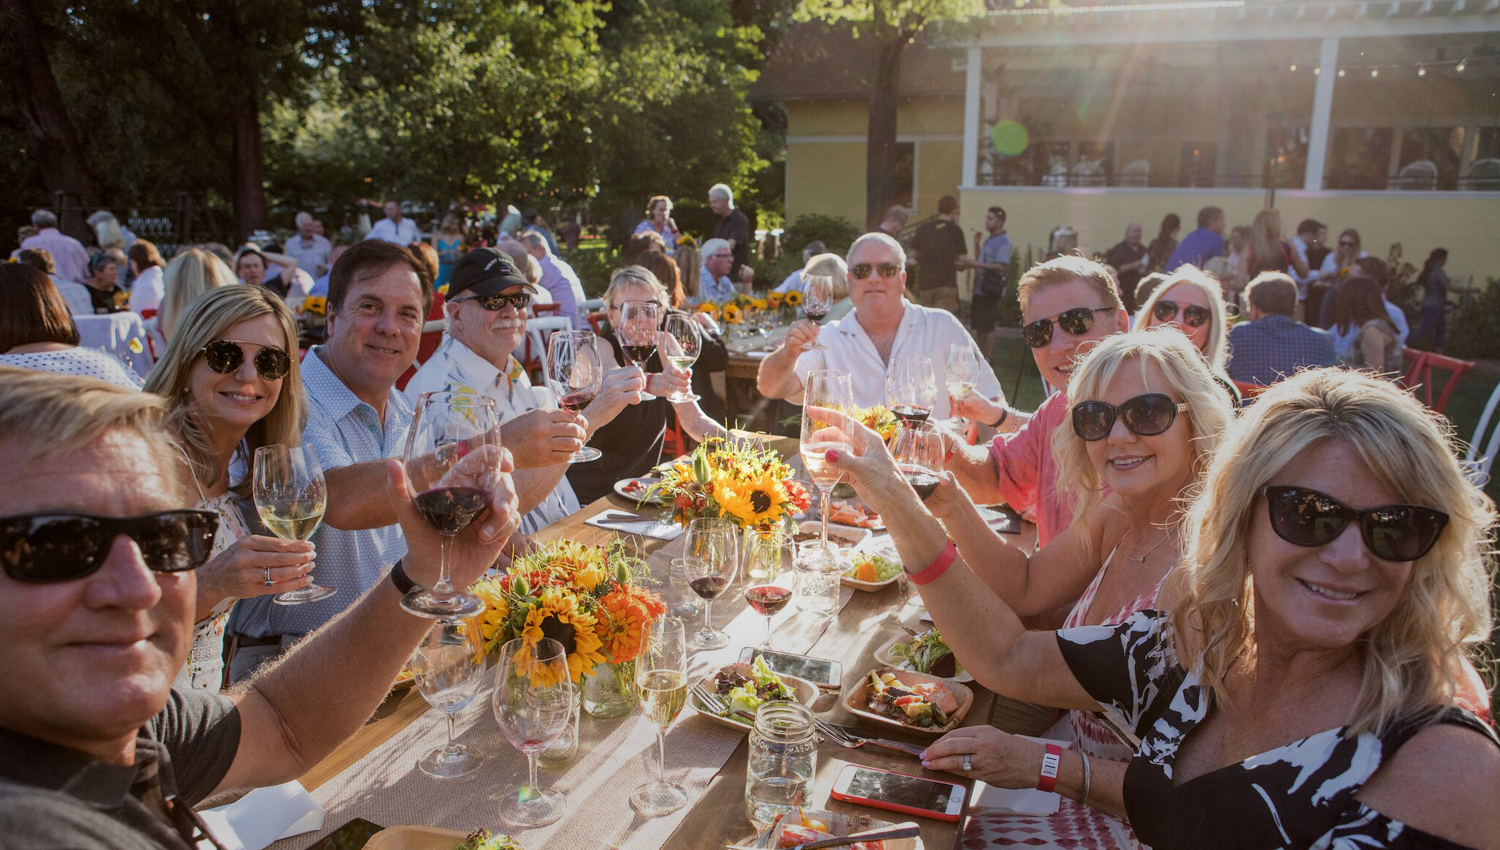 A crowd toasts at an outdoor event during sunset